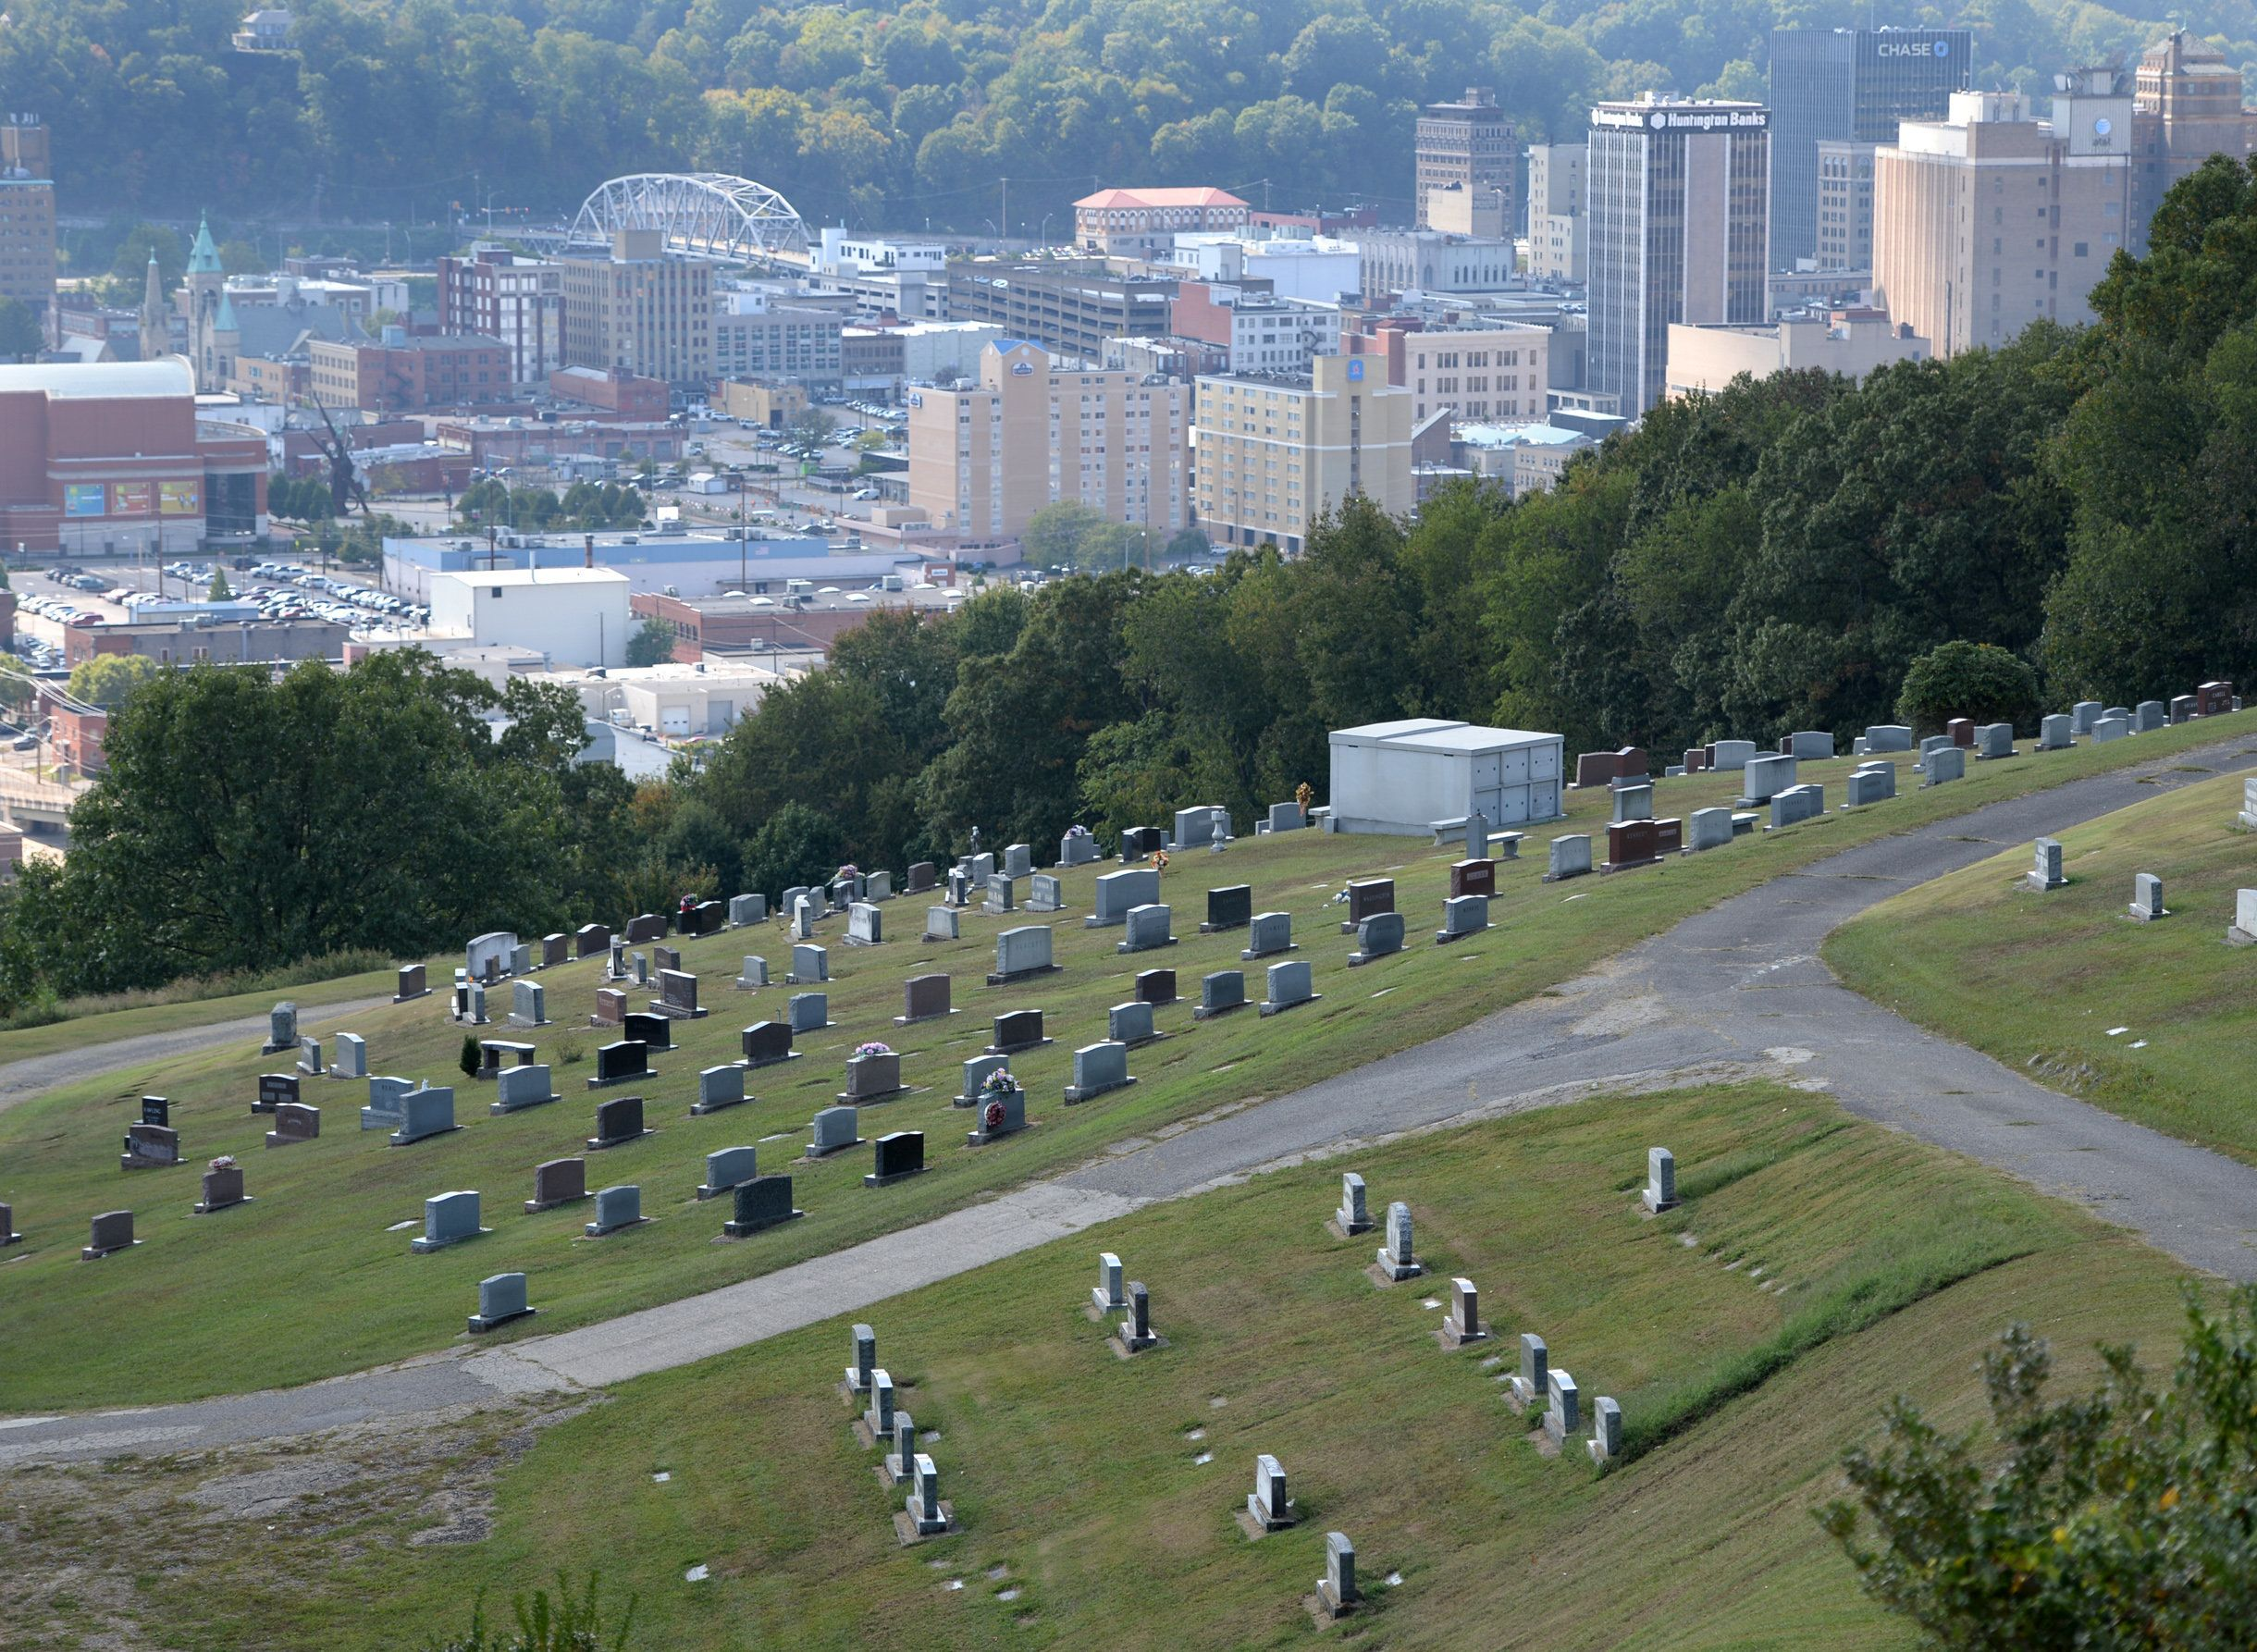 More than 880 people died of drug overdosesin West Virginia last year. The state has the worst overdose death rate in t